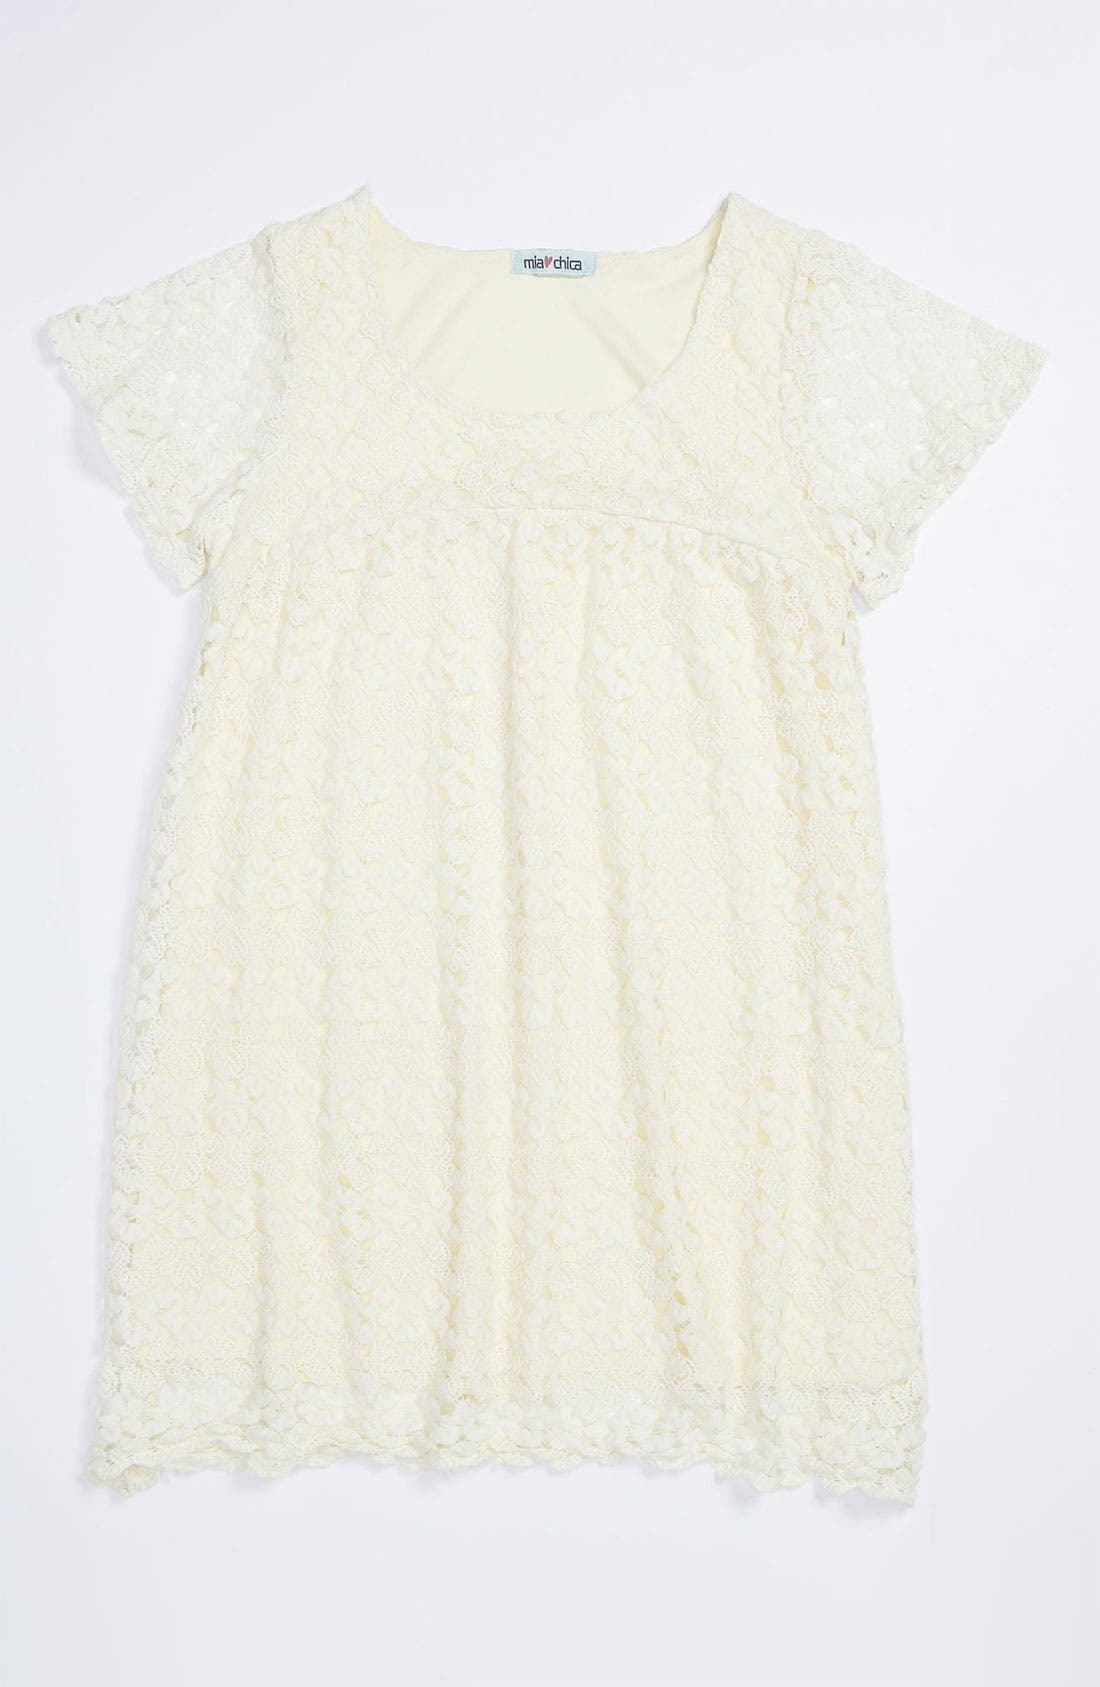 Alternate Image 1 Selected - Mia Chica Crochet Dress (Big Girls)